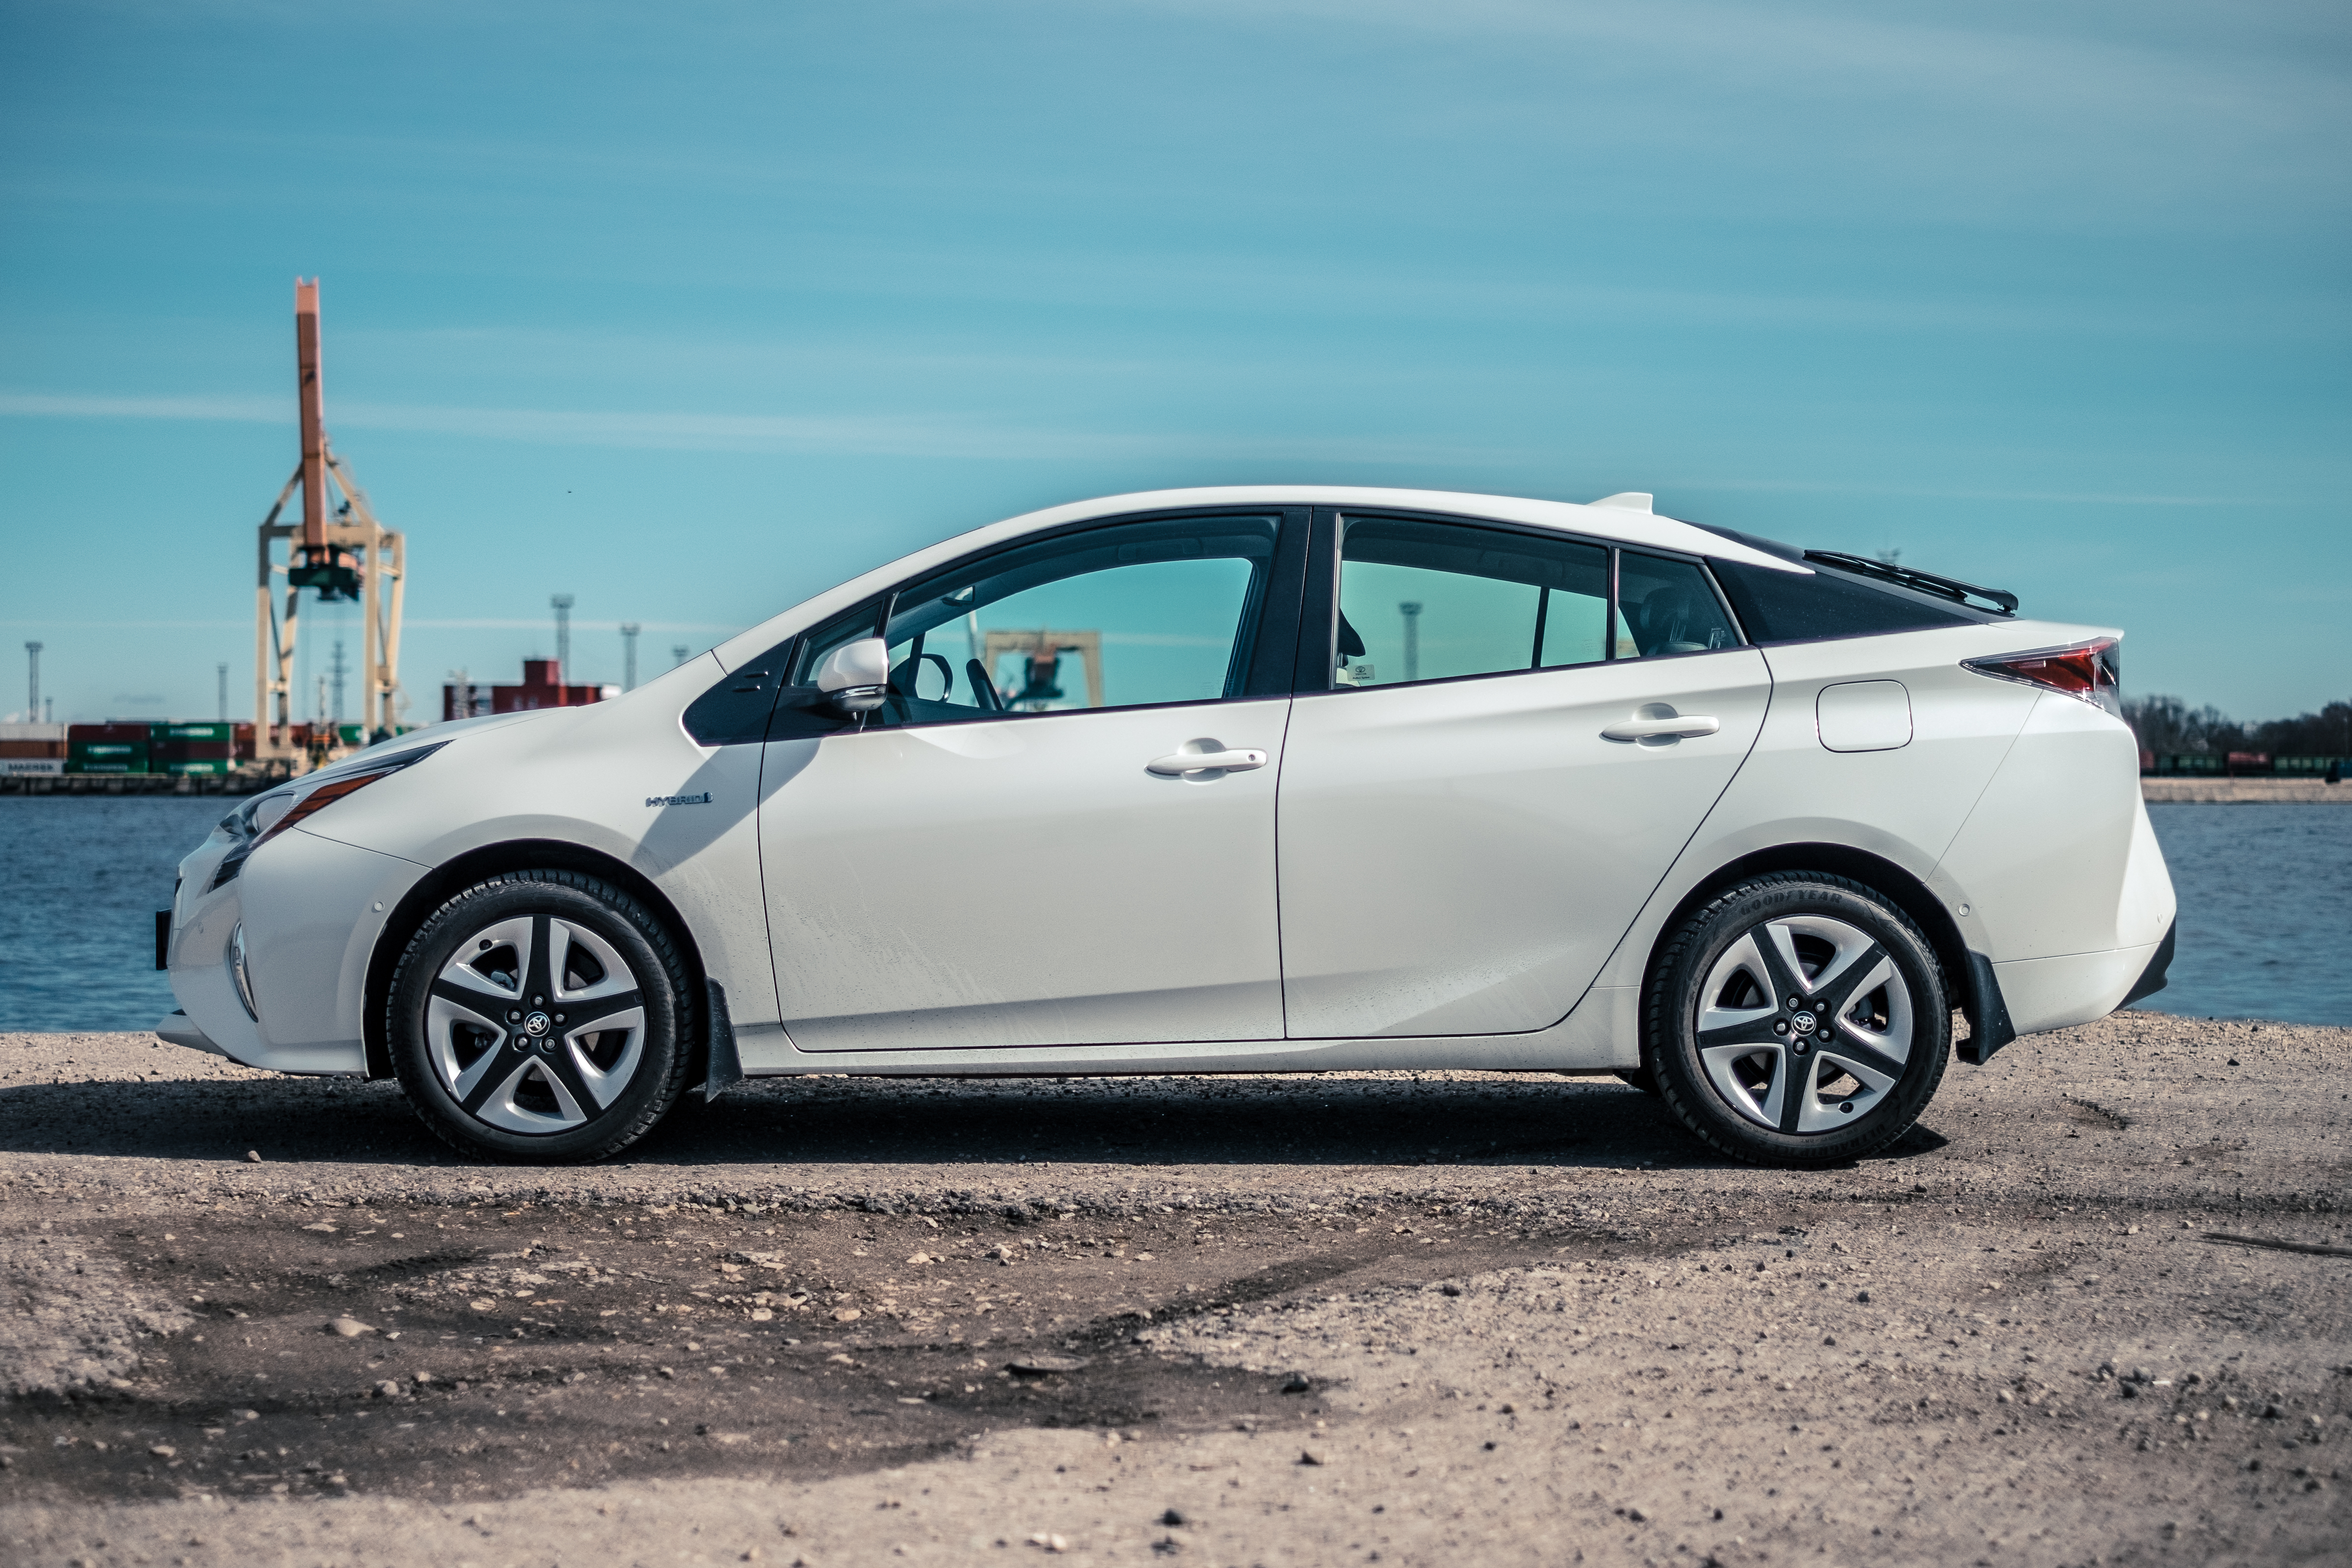 meet toyotas s new the prius toyota fortune brand